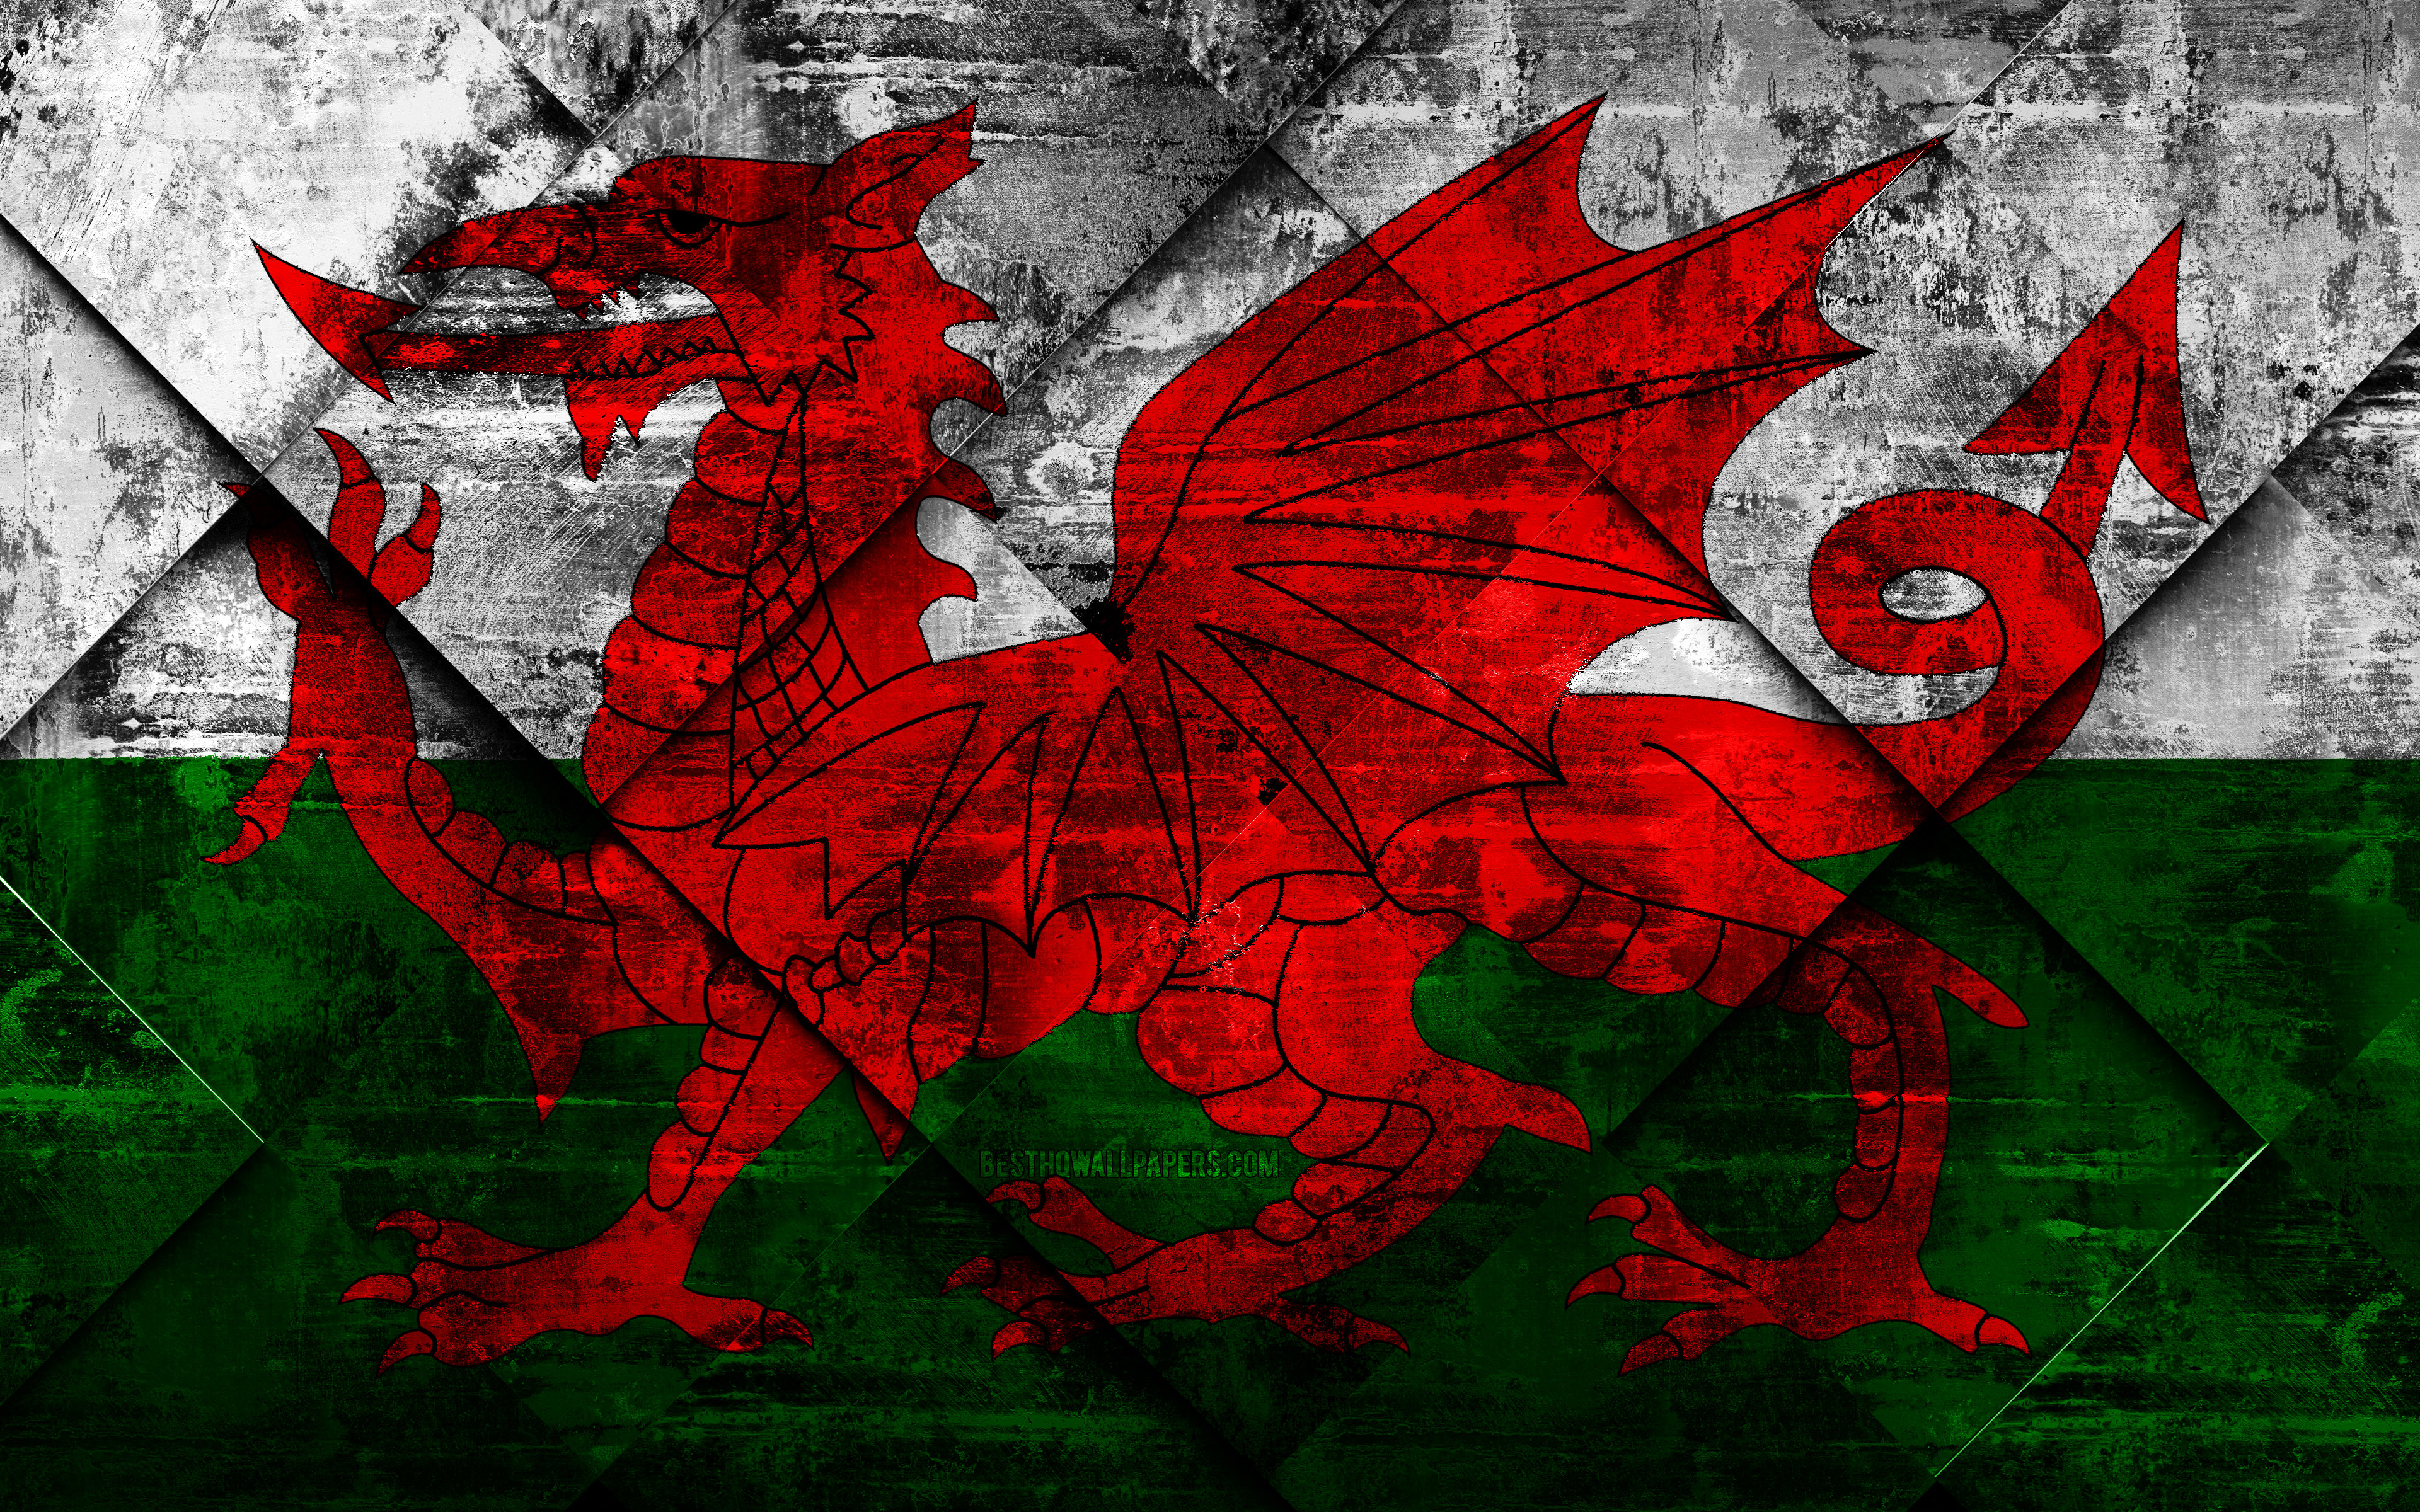 Download wallpapers Flag of Wales grunge art rhombus grunge 3840x2400